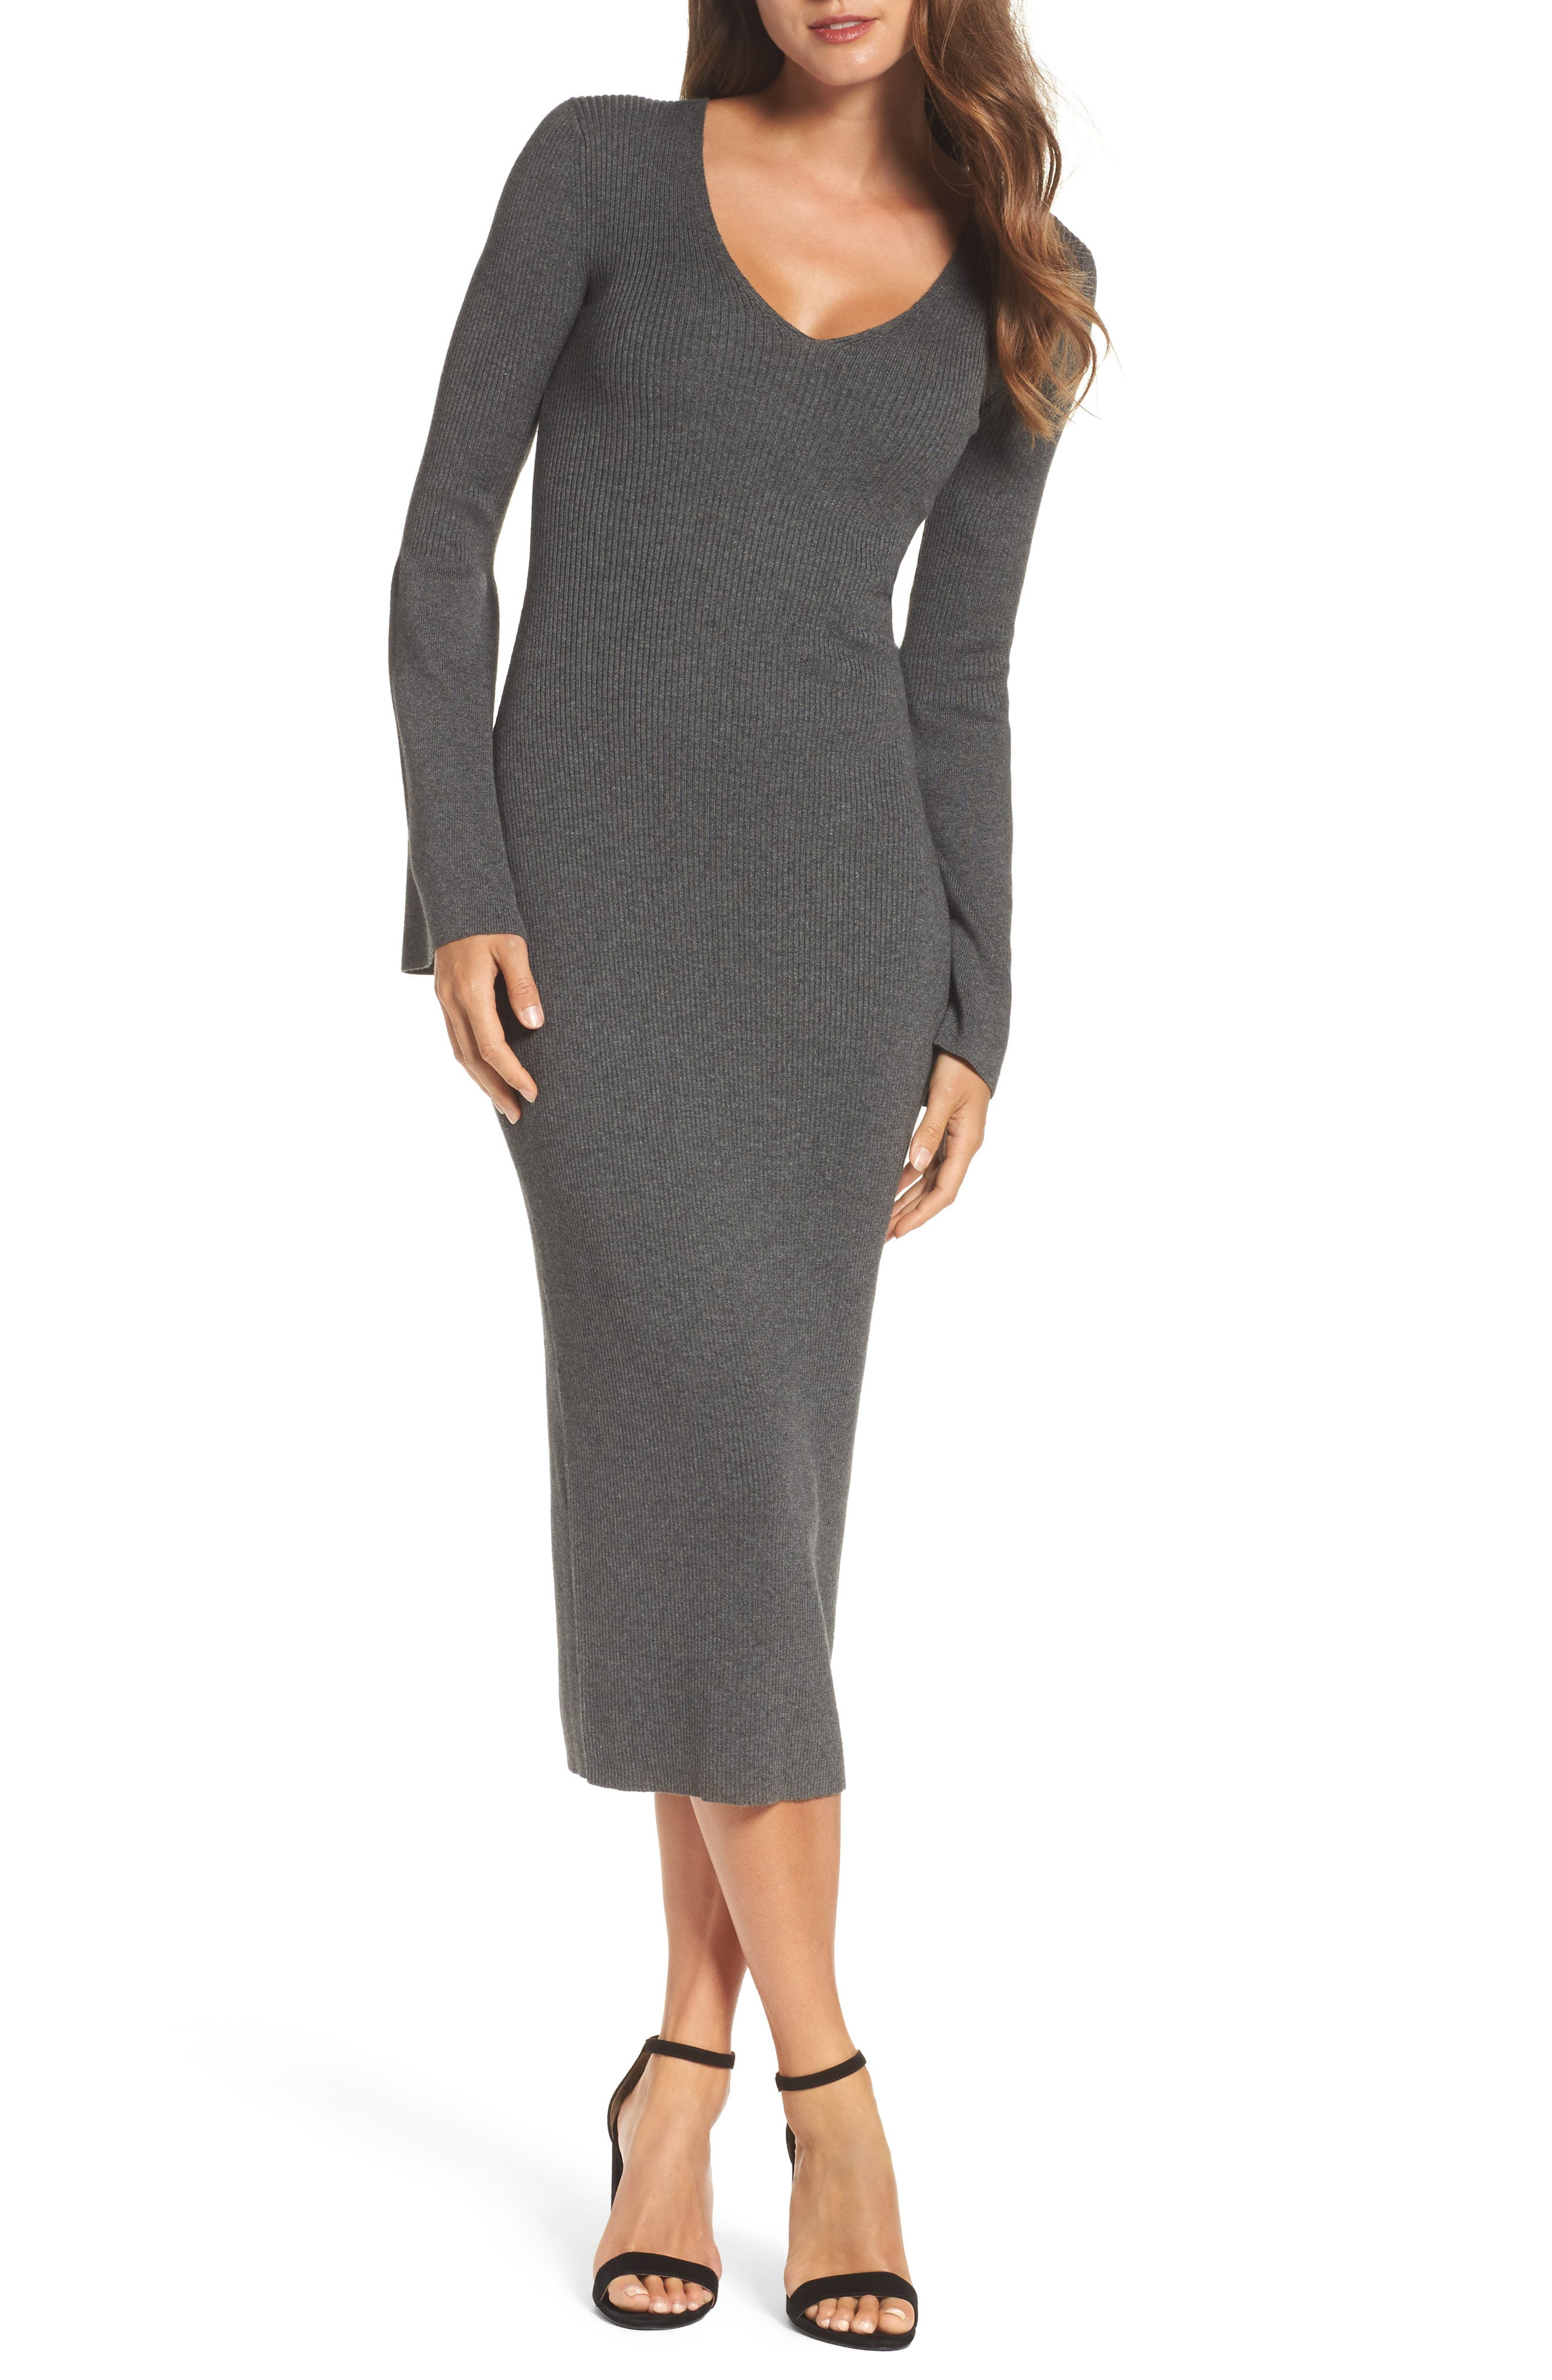 Virgie Knits Midi Dress,                             Main thumbnail 1, color,                             Charcoal